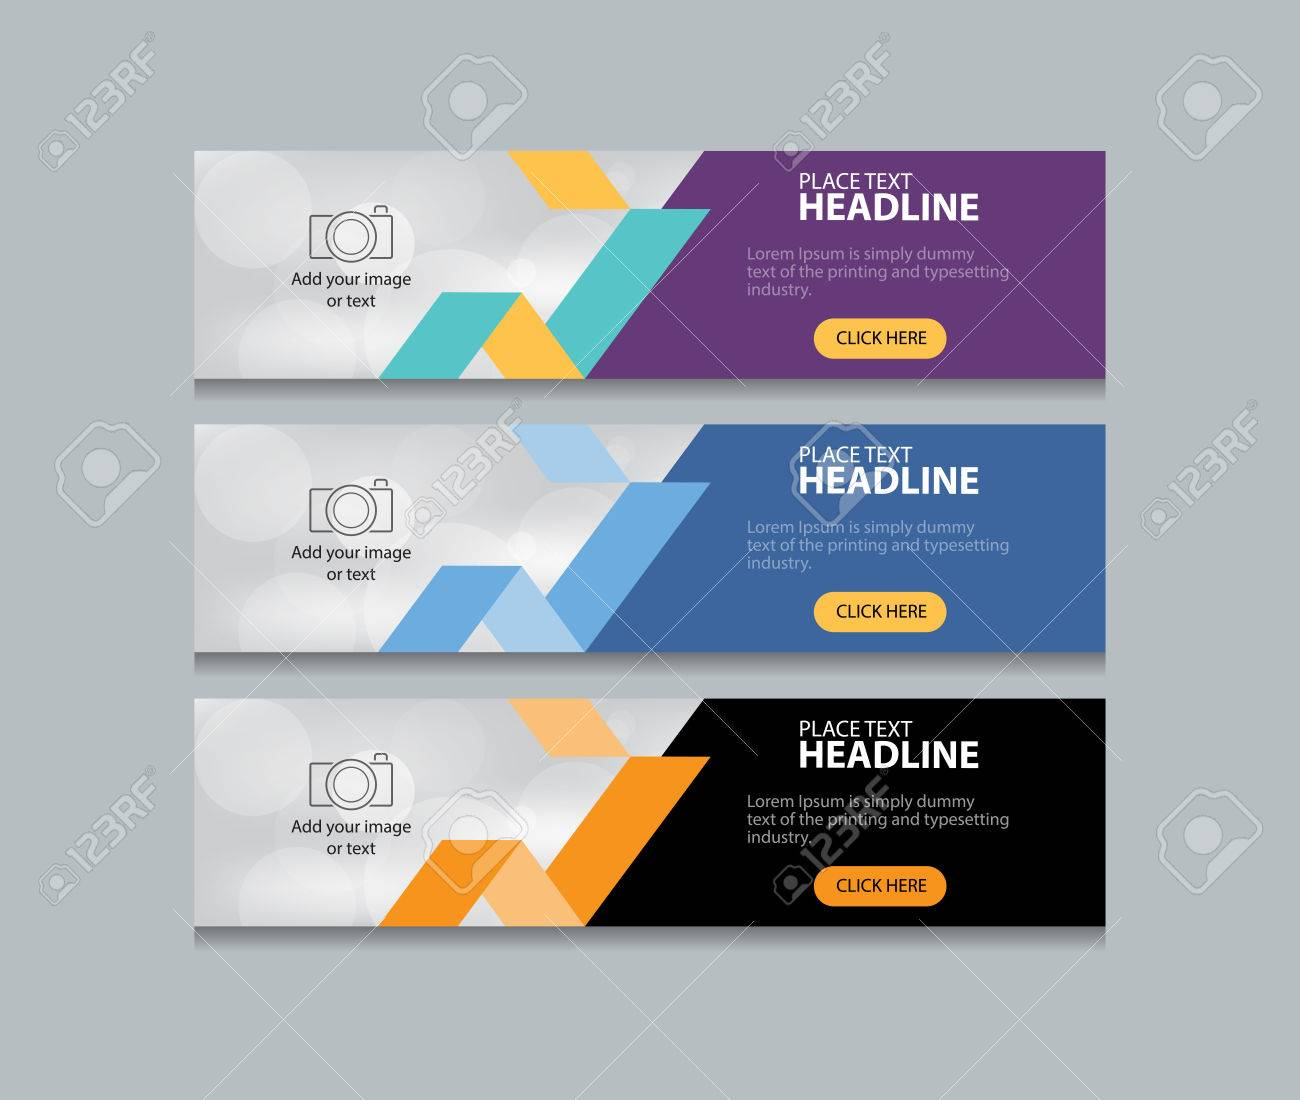 abstract web banner design template background - 60917044